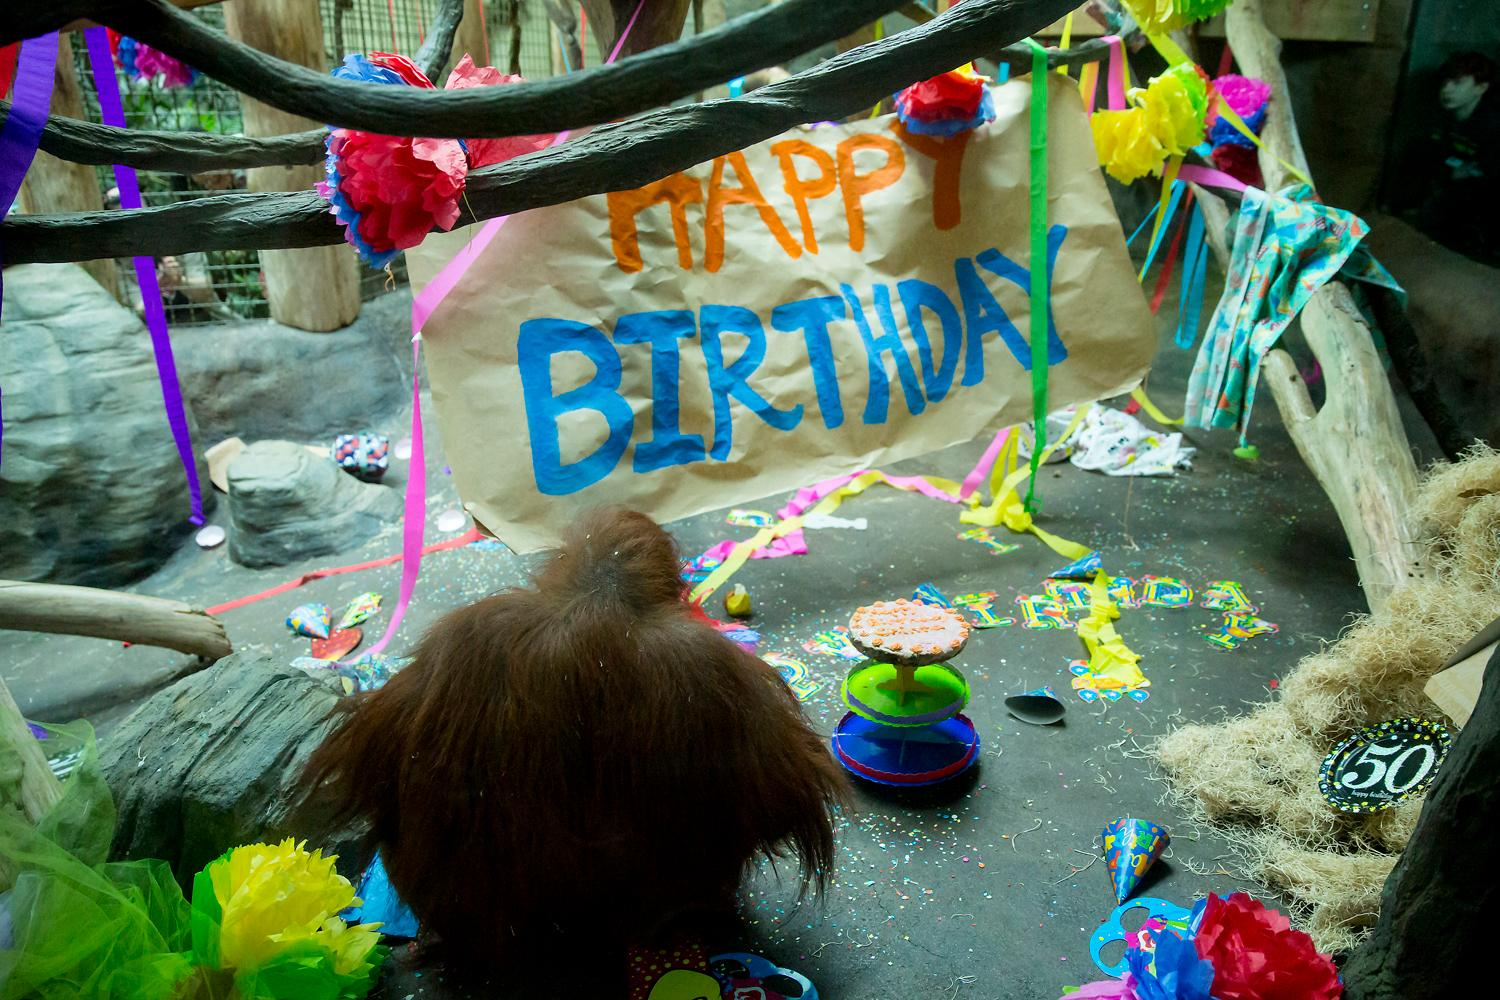 Happy birthday Chinta! The oldest orangutan and animal at the Woodland Park Zoo turned 50-years-old and the public was invited to celebrate! The zoo's food concessionaire whipped up a tasty ginger-carrot cake for Chinta which was devoured quickly. Captain Eric Sano of the Seattle Police Department even paid a visit who named Chinta and her twin brother when he was 6-years old. (Sy Bean / Seattle Refined)